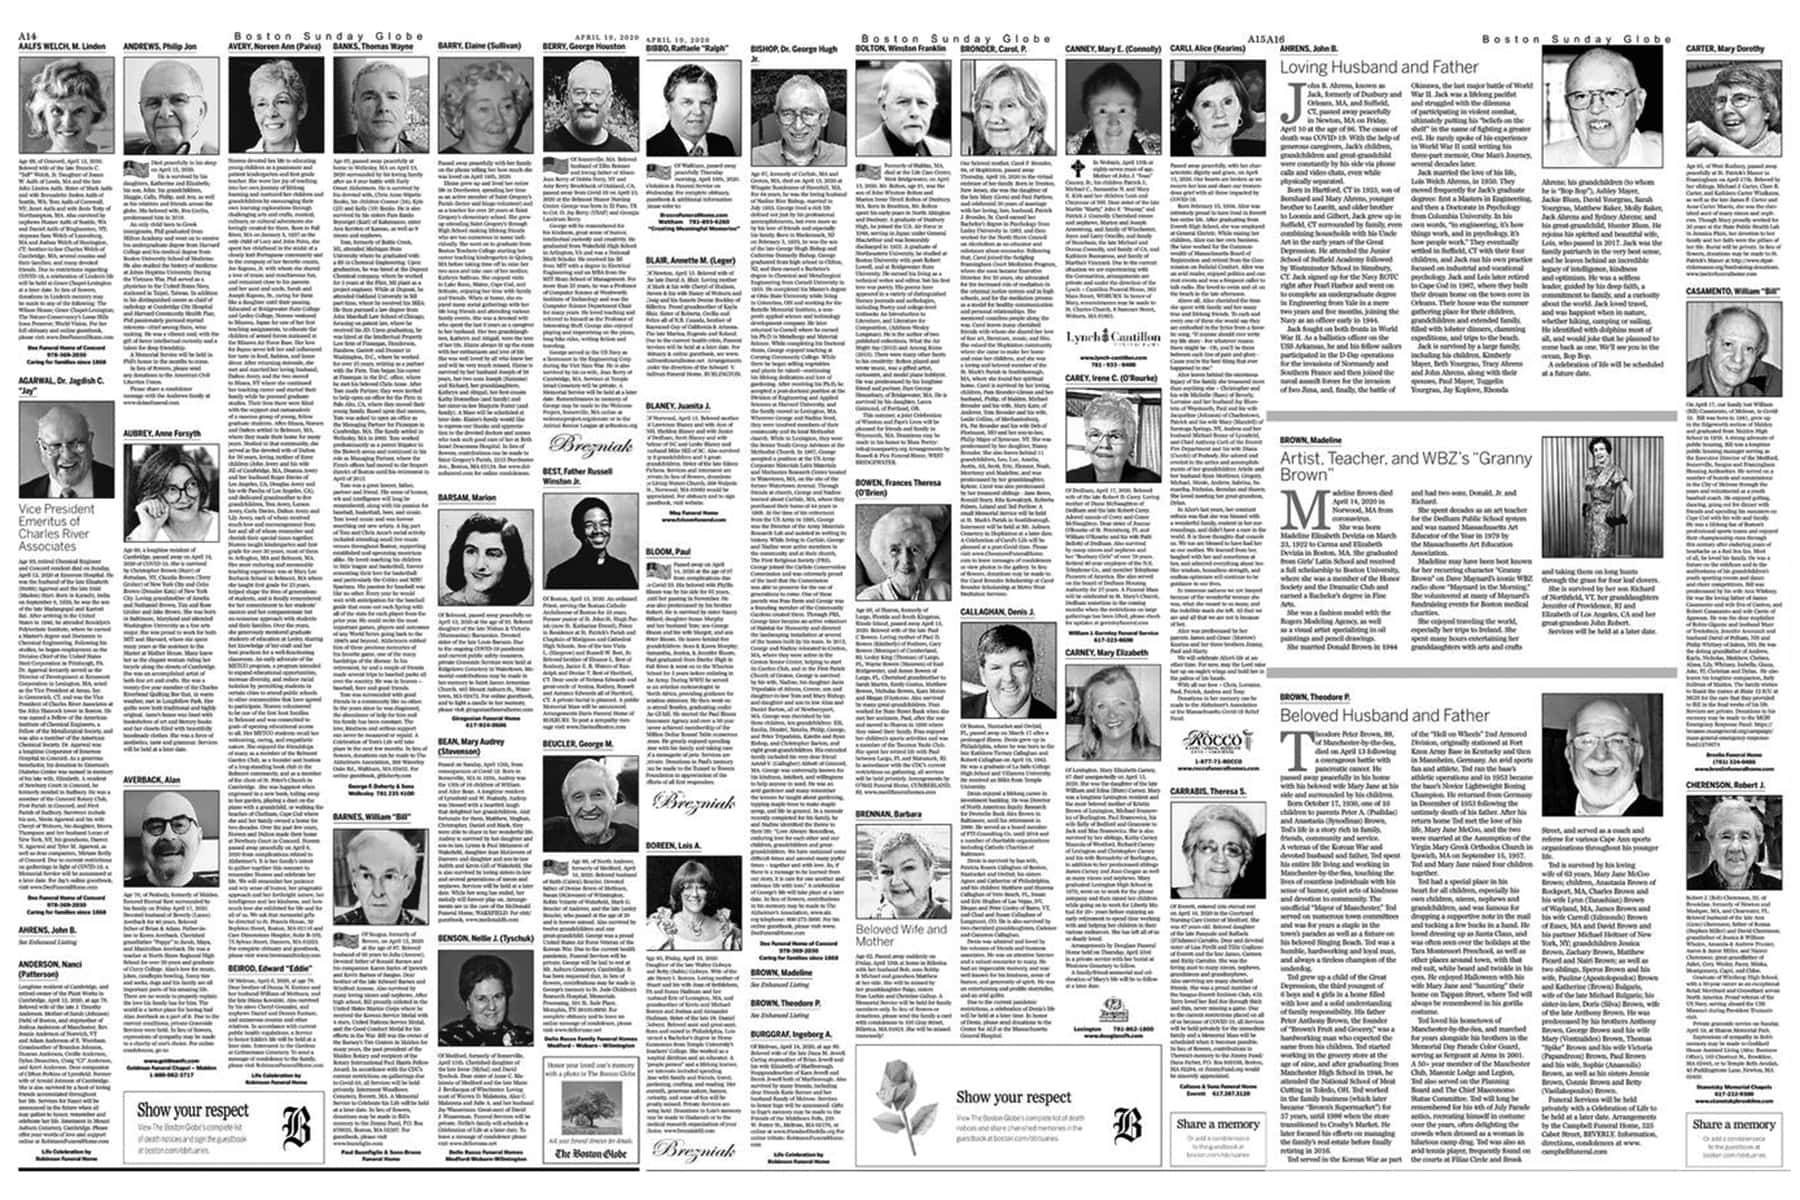 042020_bostonglobeobits16